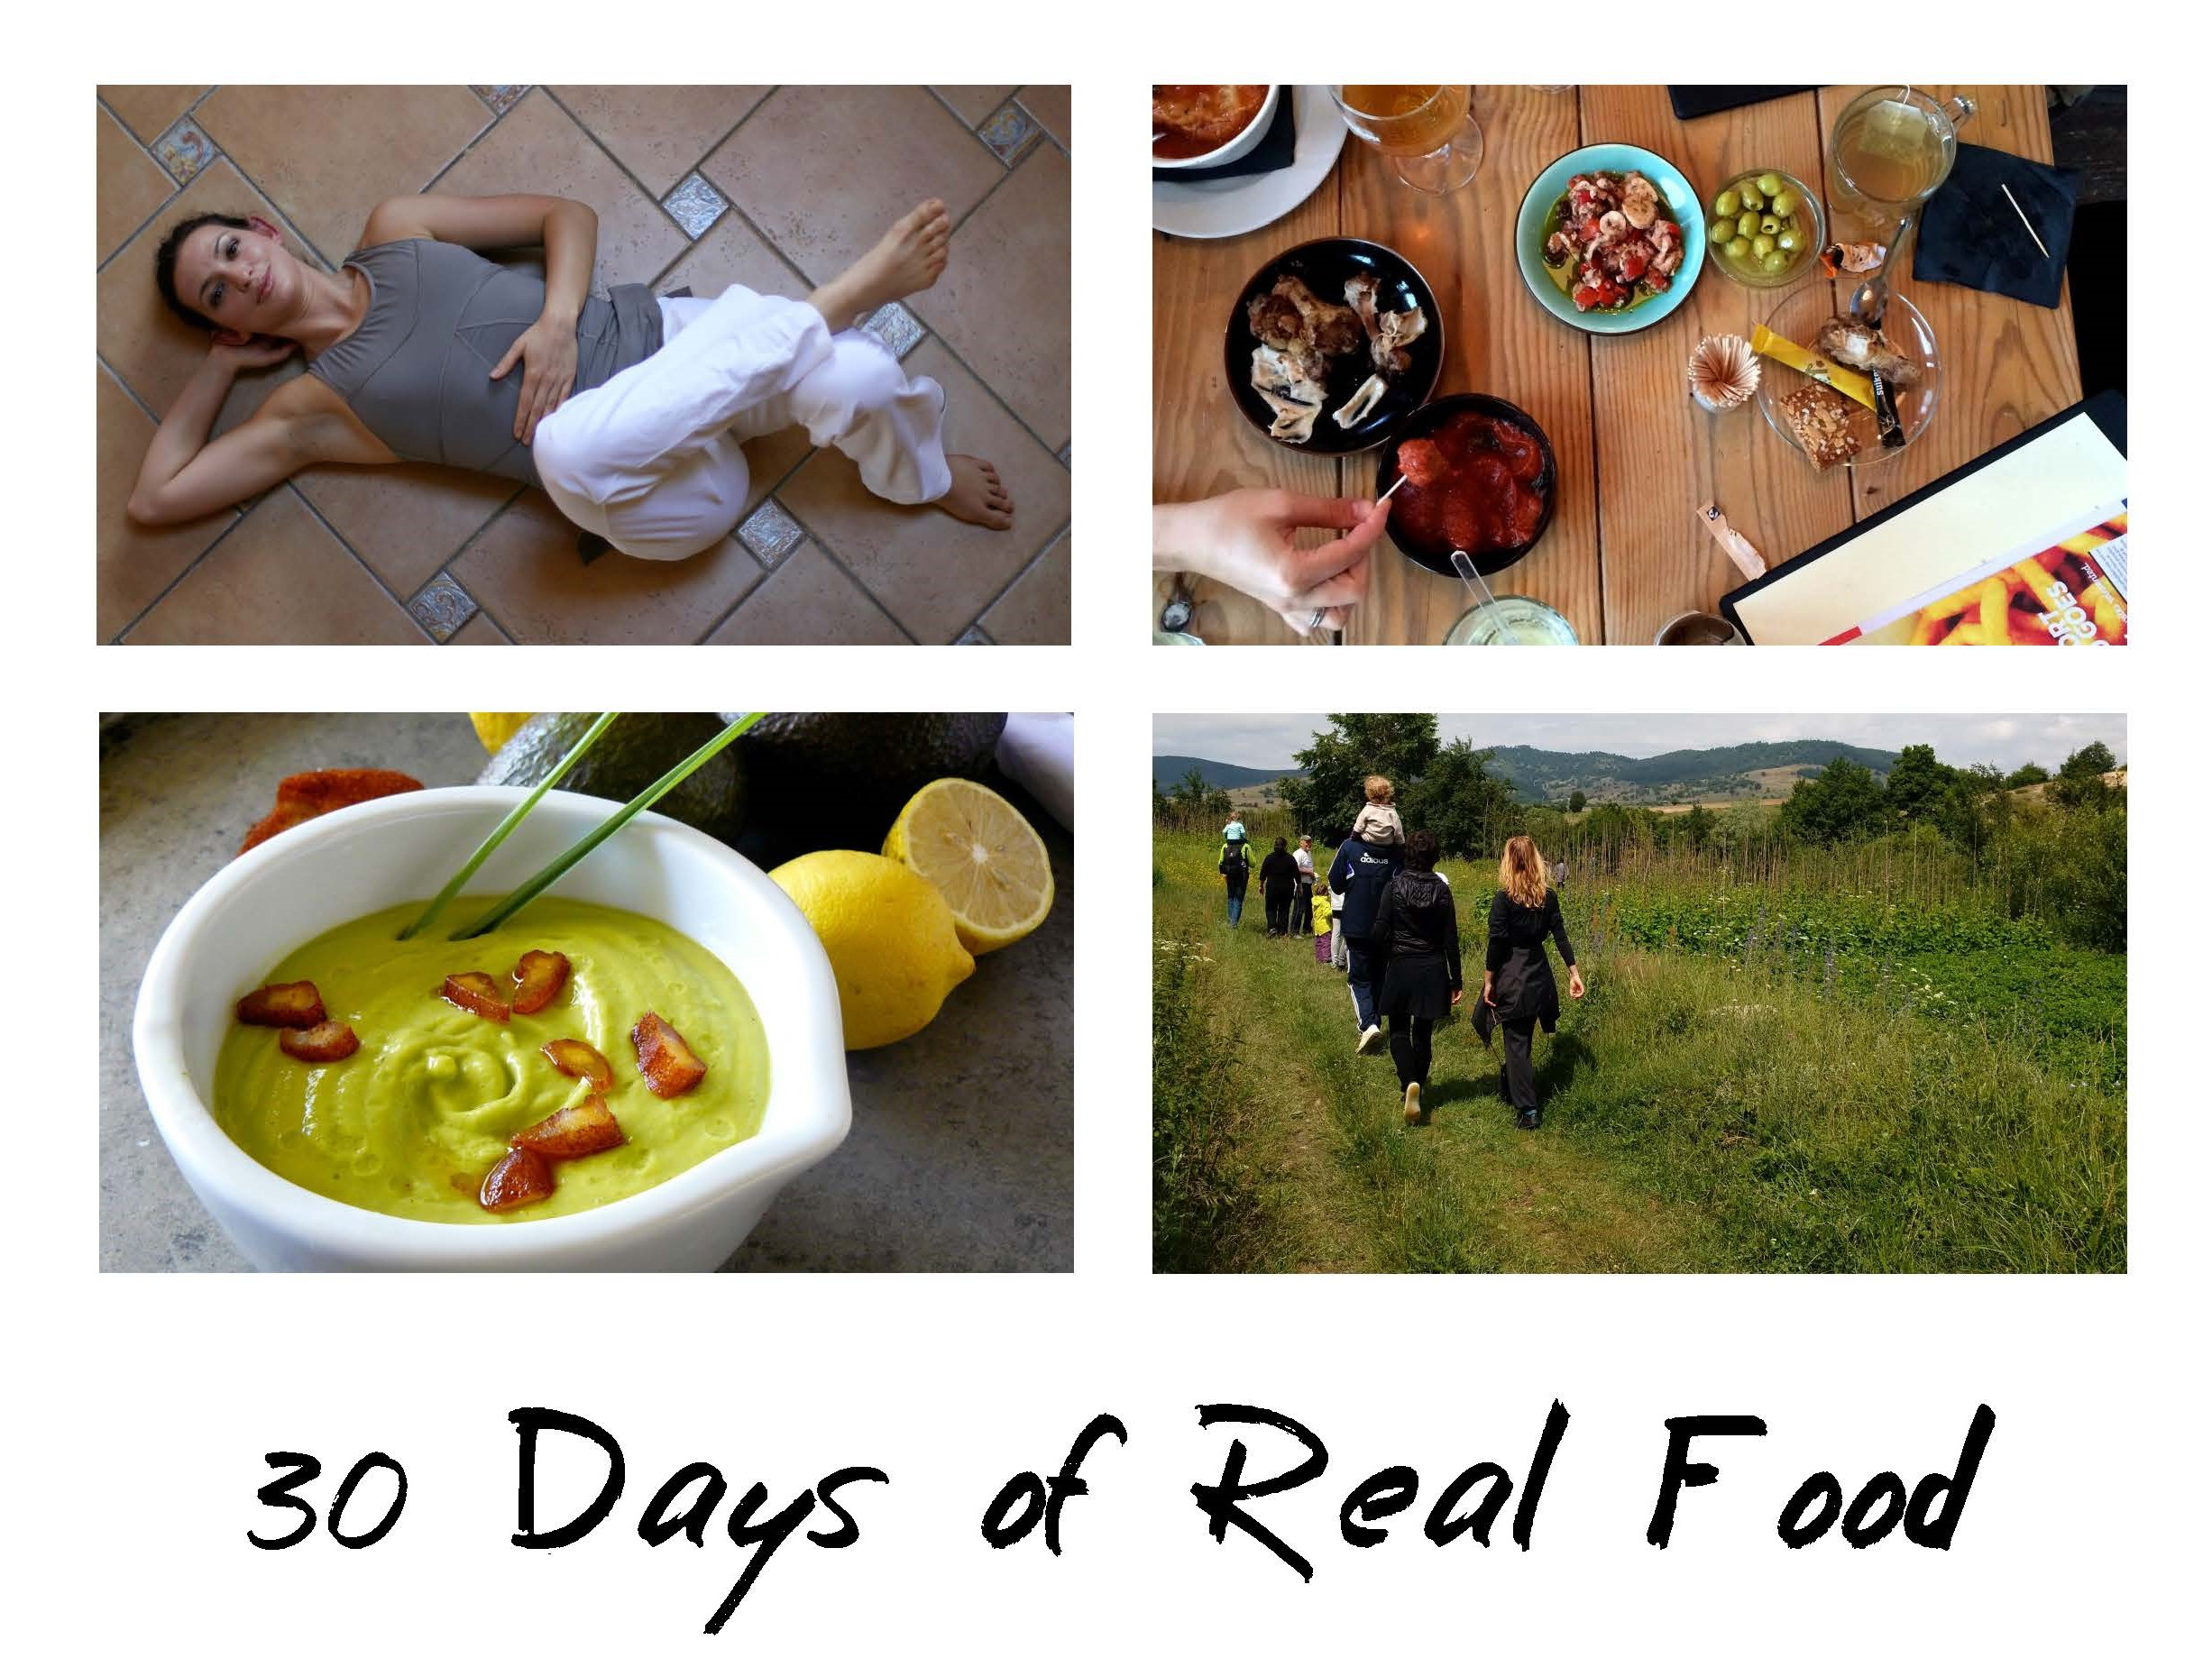 30 Days of Real Food - The Real Food Reset